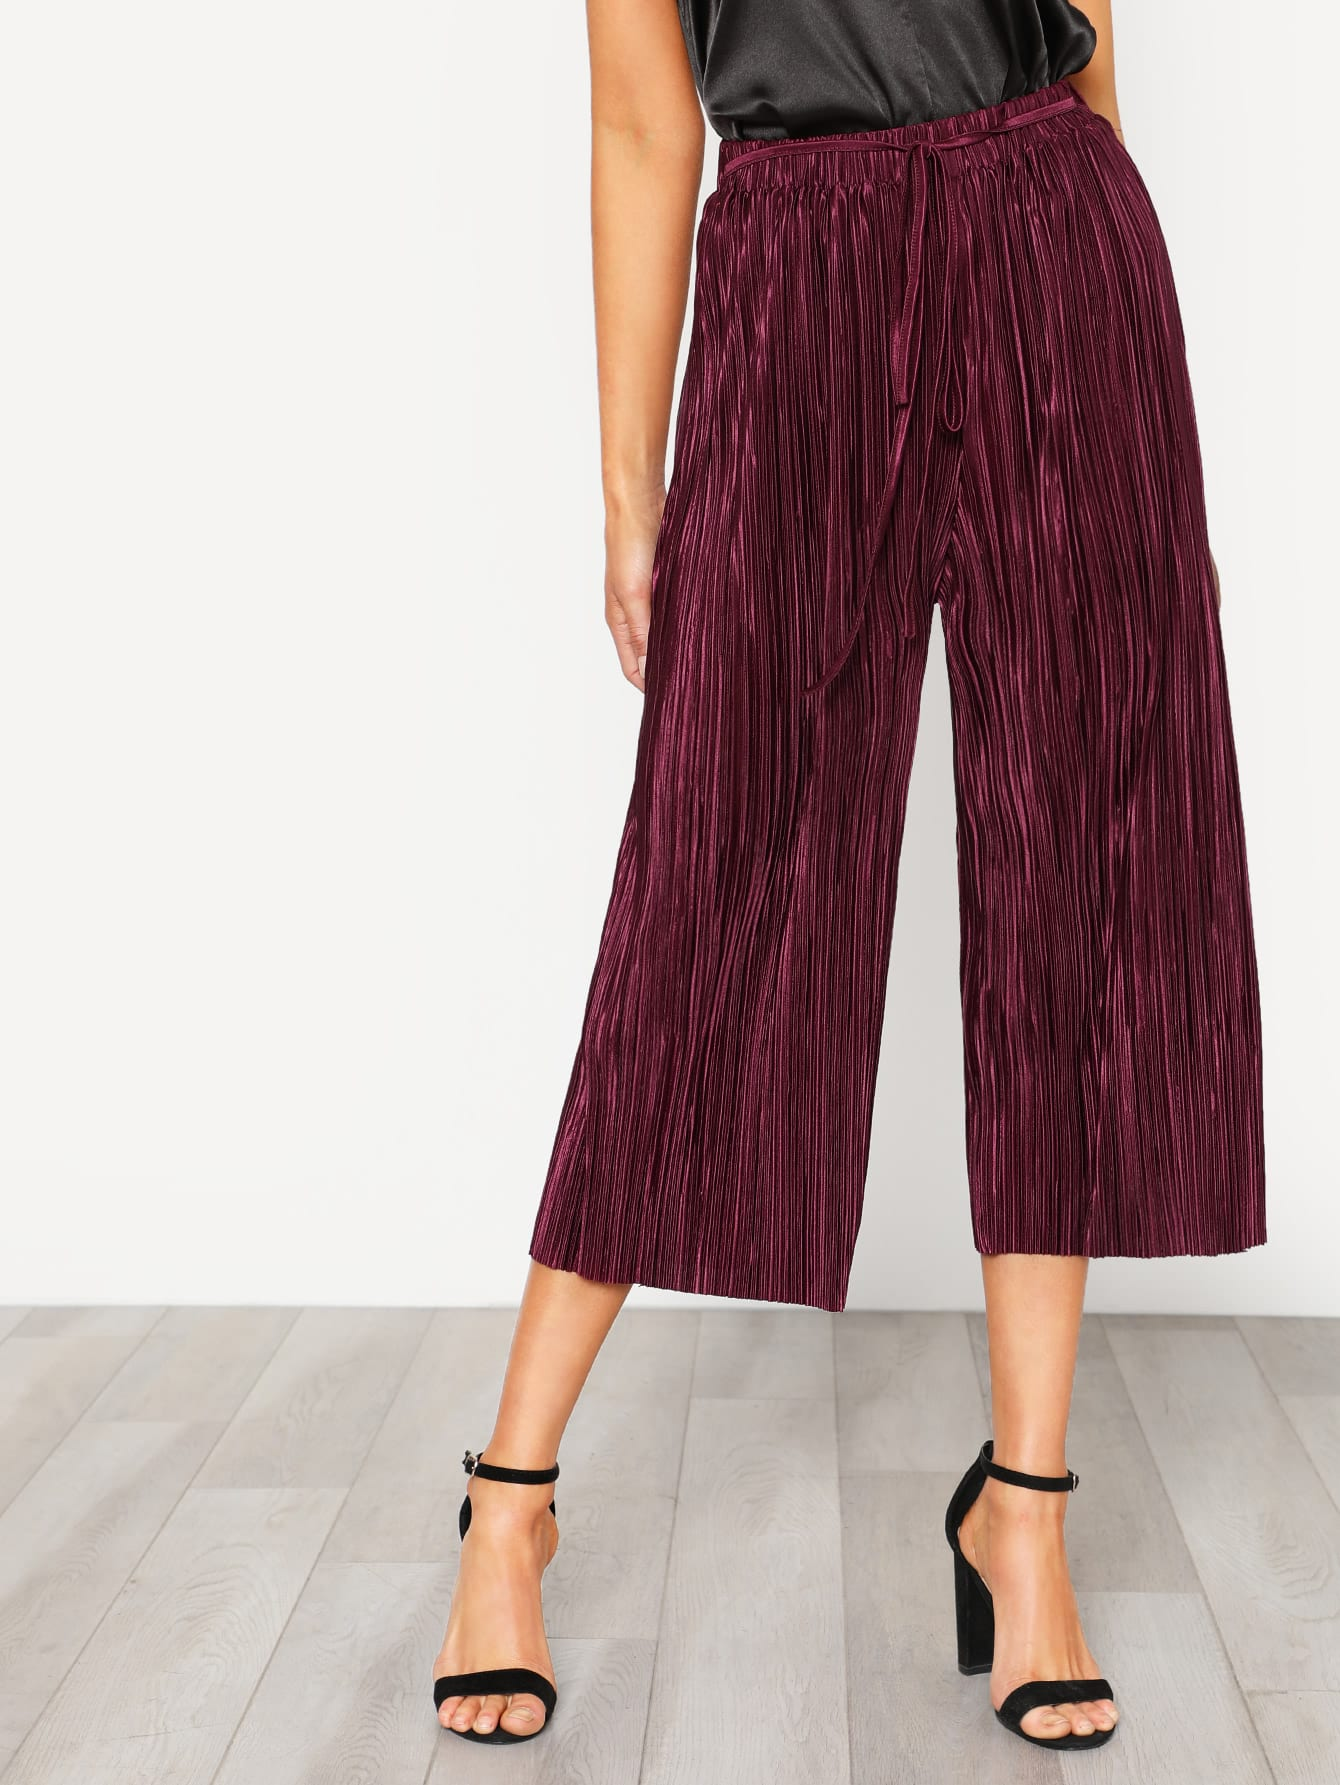 Self Tie Pleated Culotte Pants stylish women s solid color pleated culotte